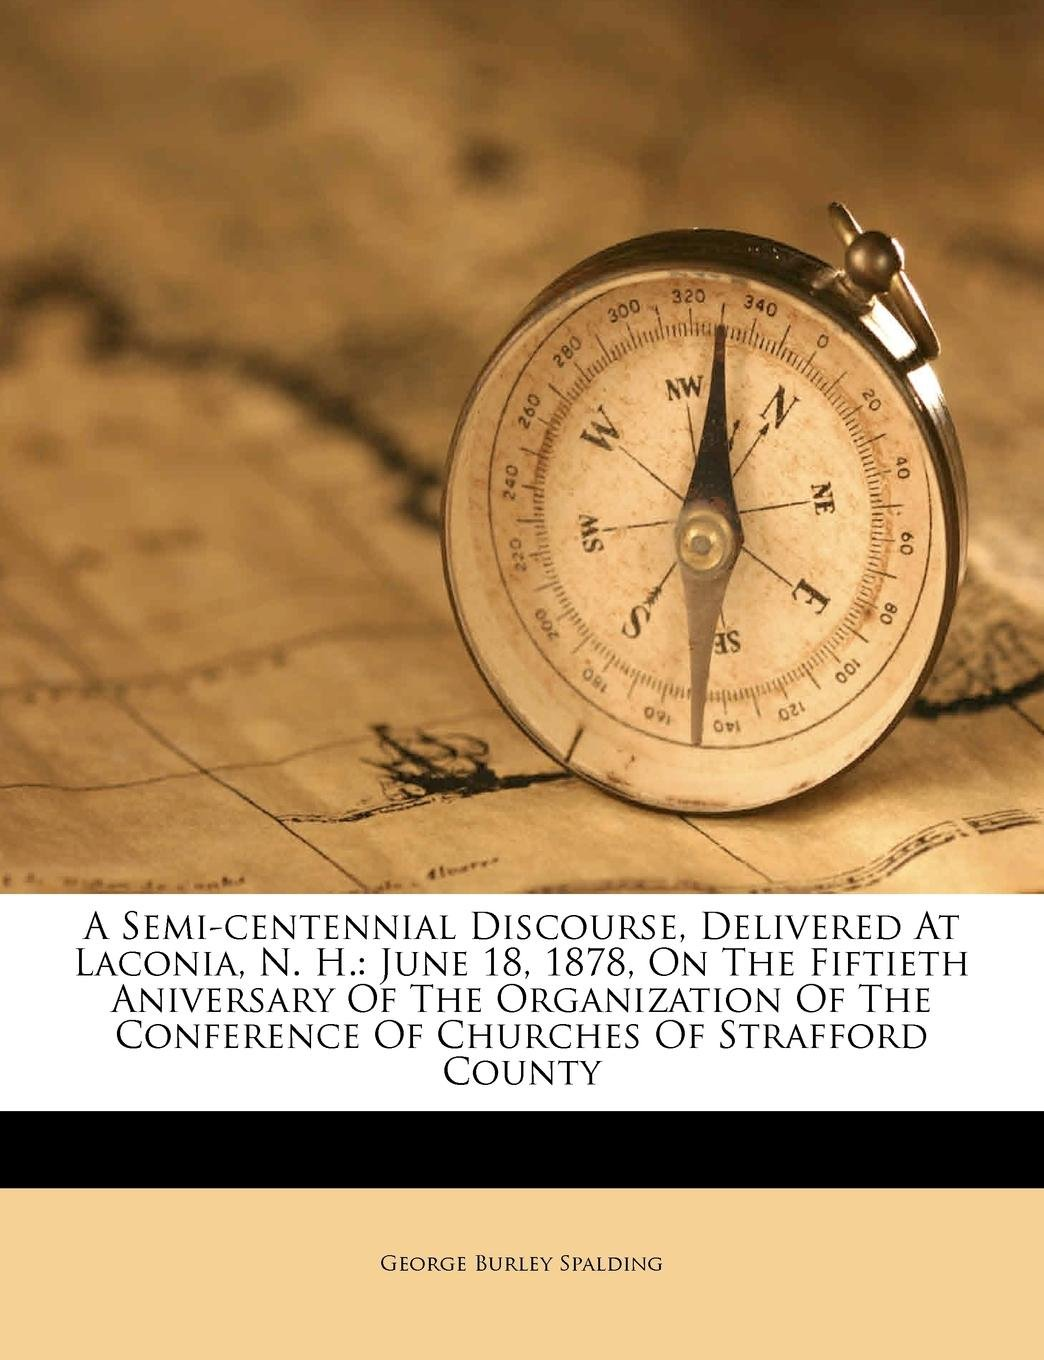 A Semi-centennial Discourse, Delivered At Laconia, N. H.: June 18, 1878, On The Fiftieth Aniversary Of The Organization Of The Conference Of Churches Of Strafford County pdf epub